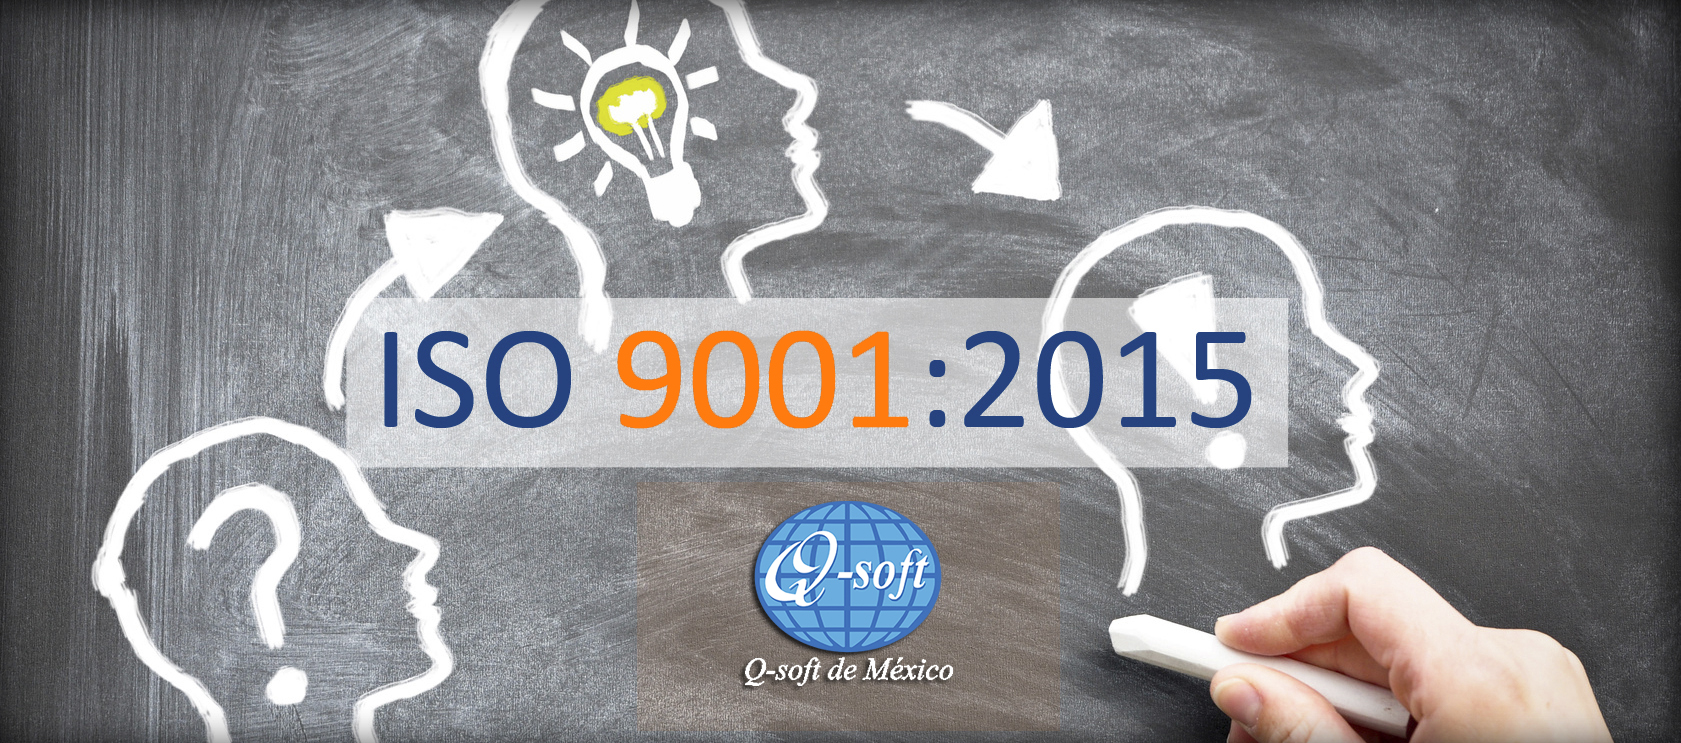 iso 9001 pdf 2015 download